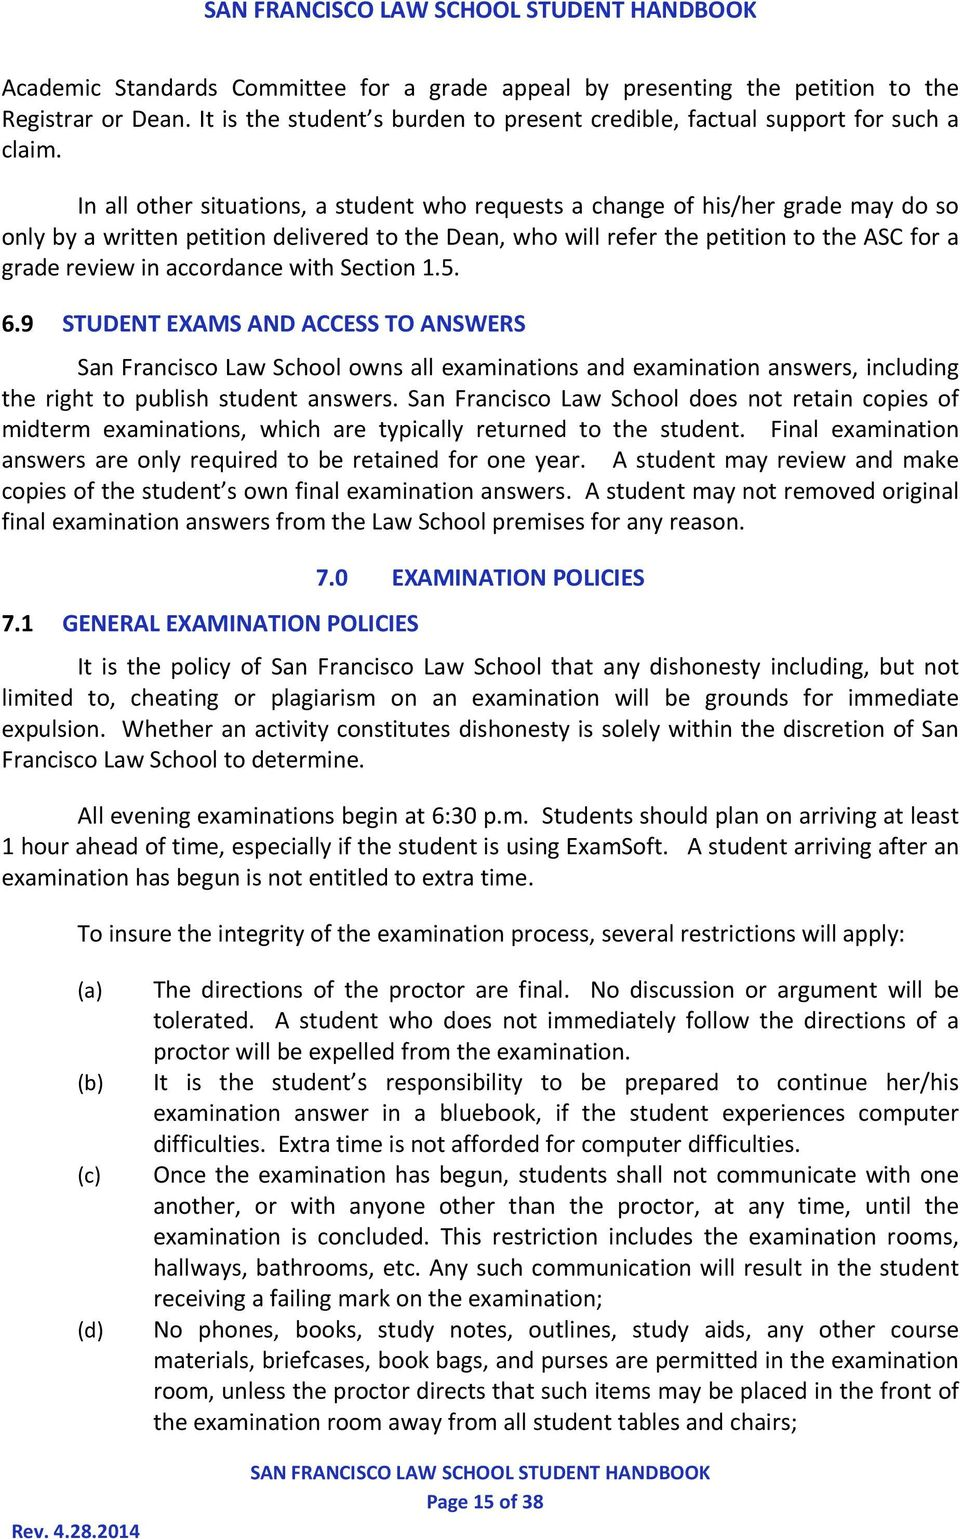 accordance with Section 1.5. 6.9 STUDENT EXAMS AND ACCESS TO ANSWERS San Francisco Law School owns all examinations and examination answers, including the right to publish student answers.